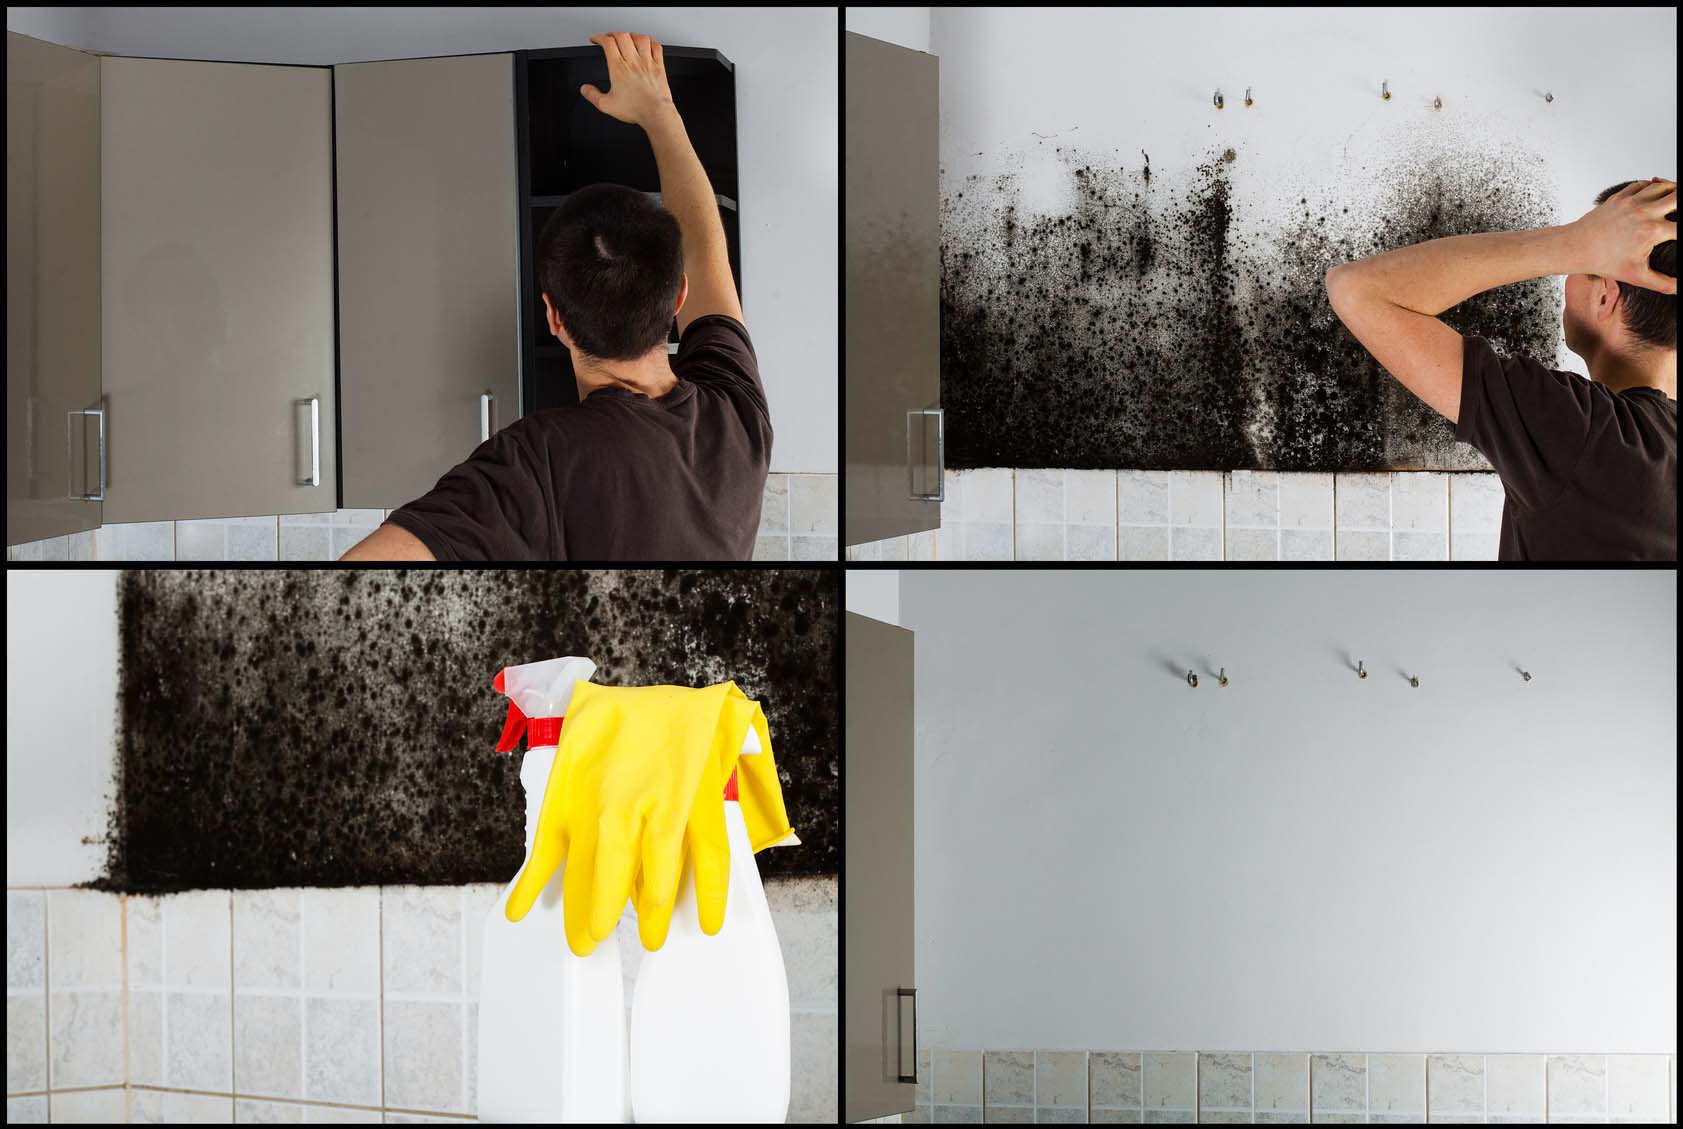 Collage of photos showing a man removing mold from behind the kitchen cabinets.